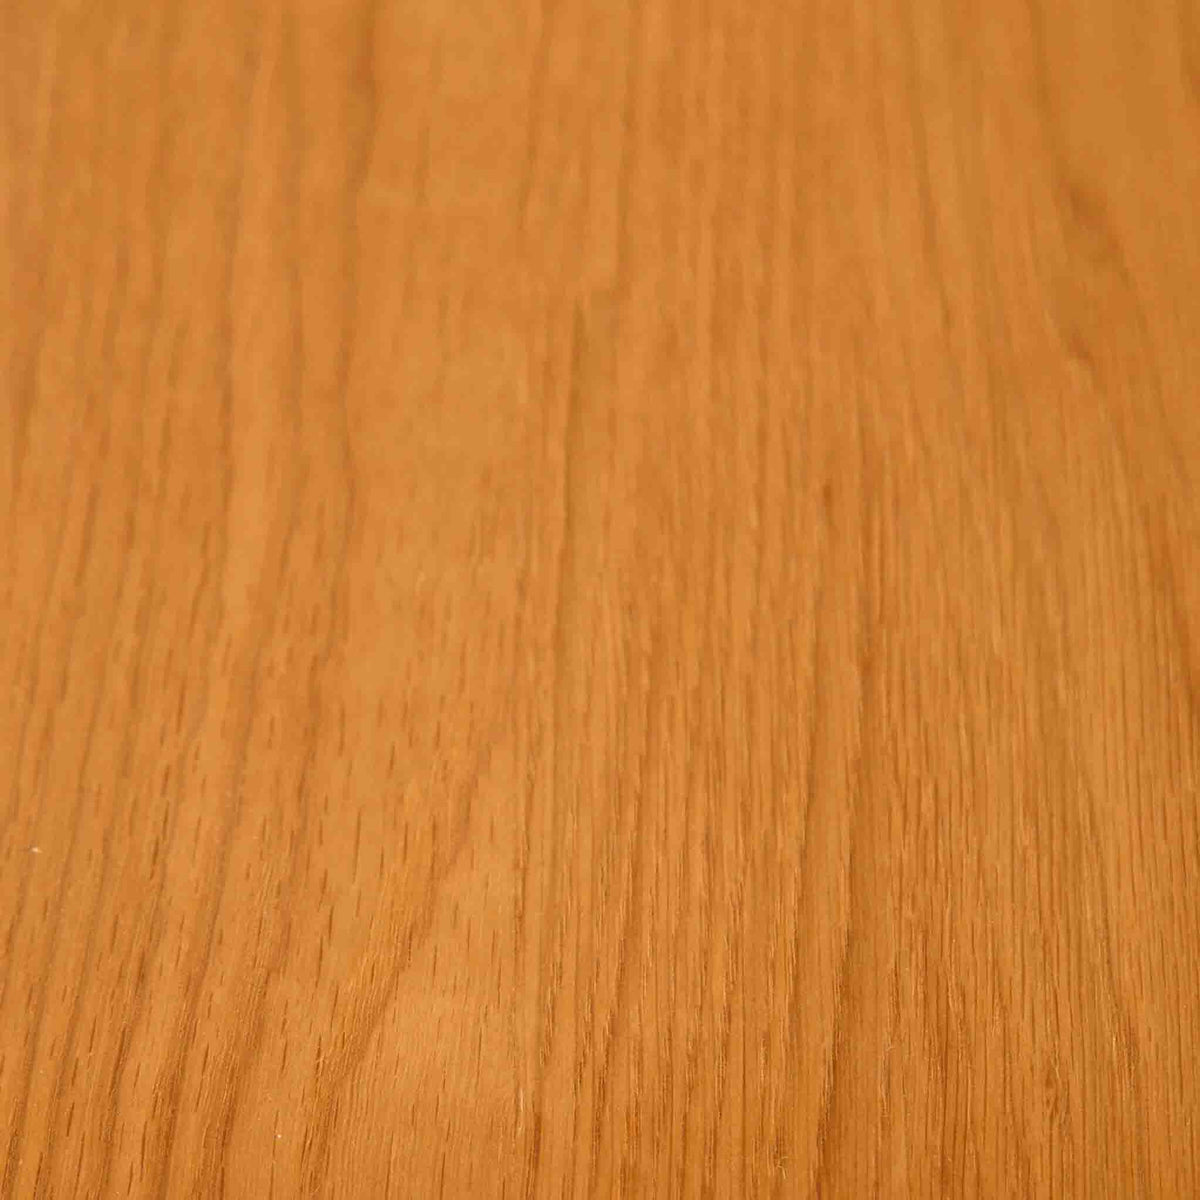 Close up of oak wood grain on The Padstow Cream Small Wooden Dressing Table